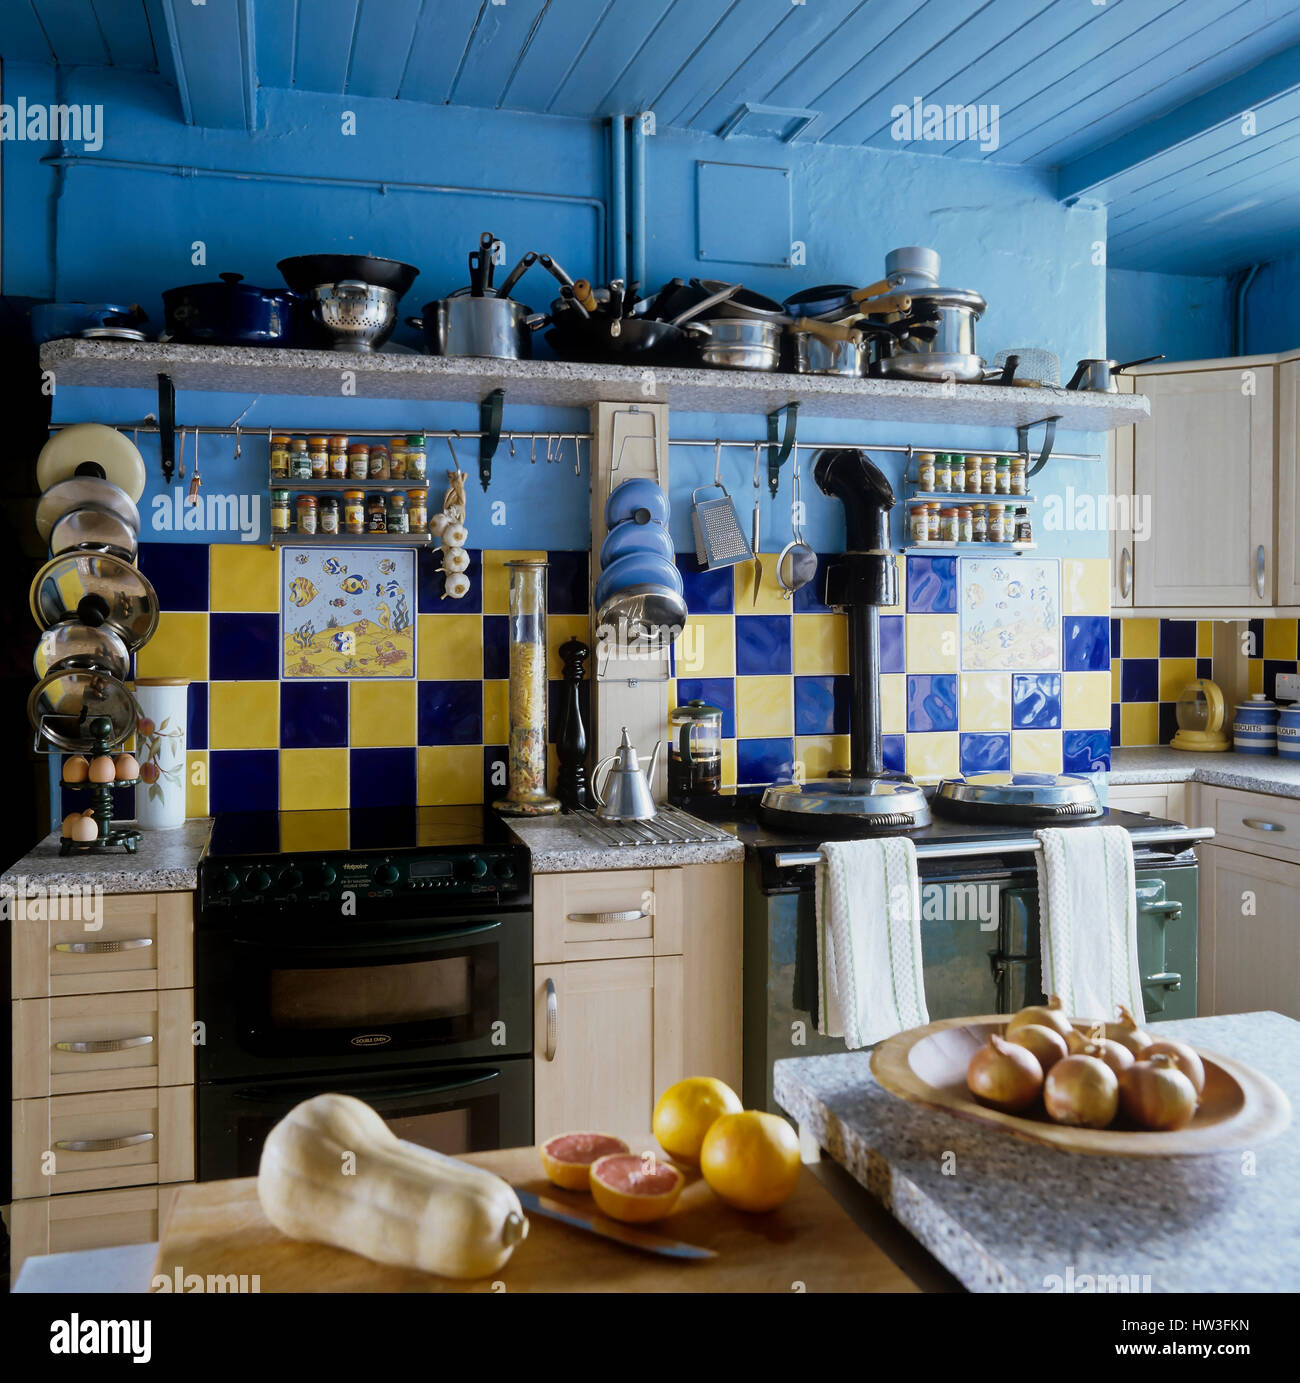 Kitchen with painted beams. - Stock Image